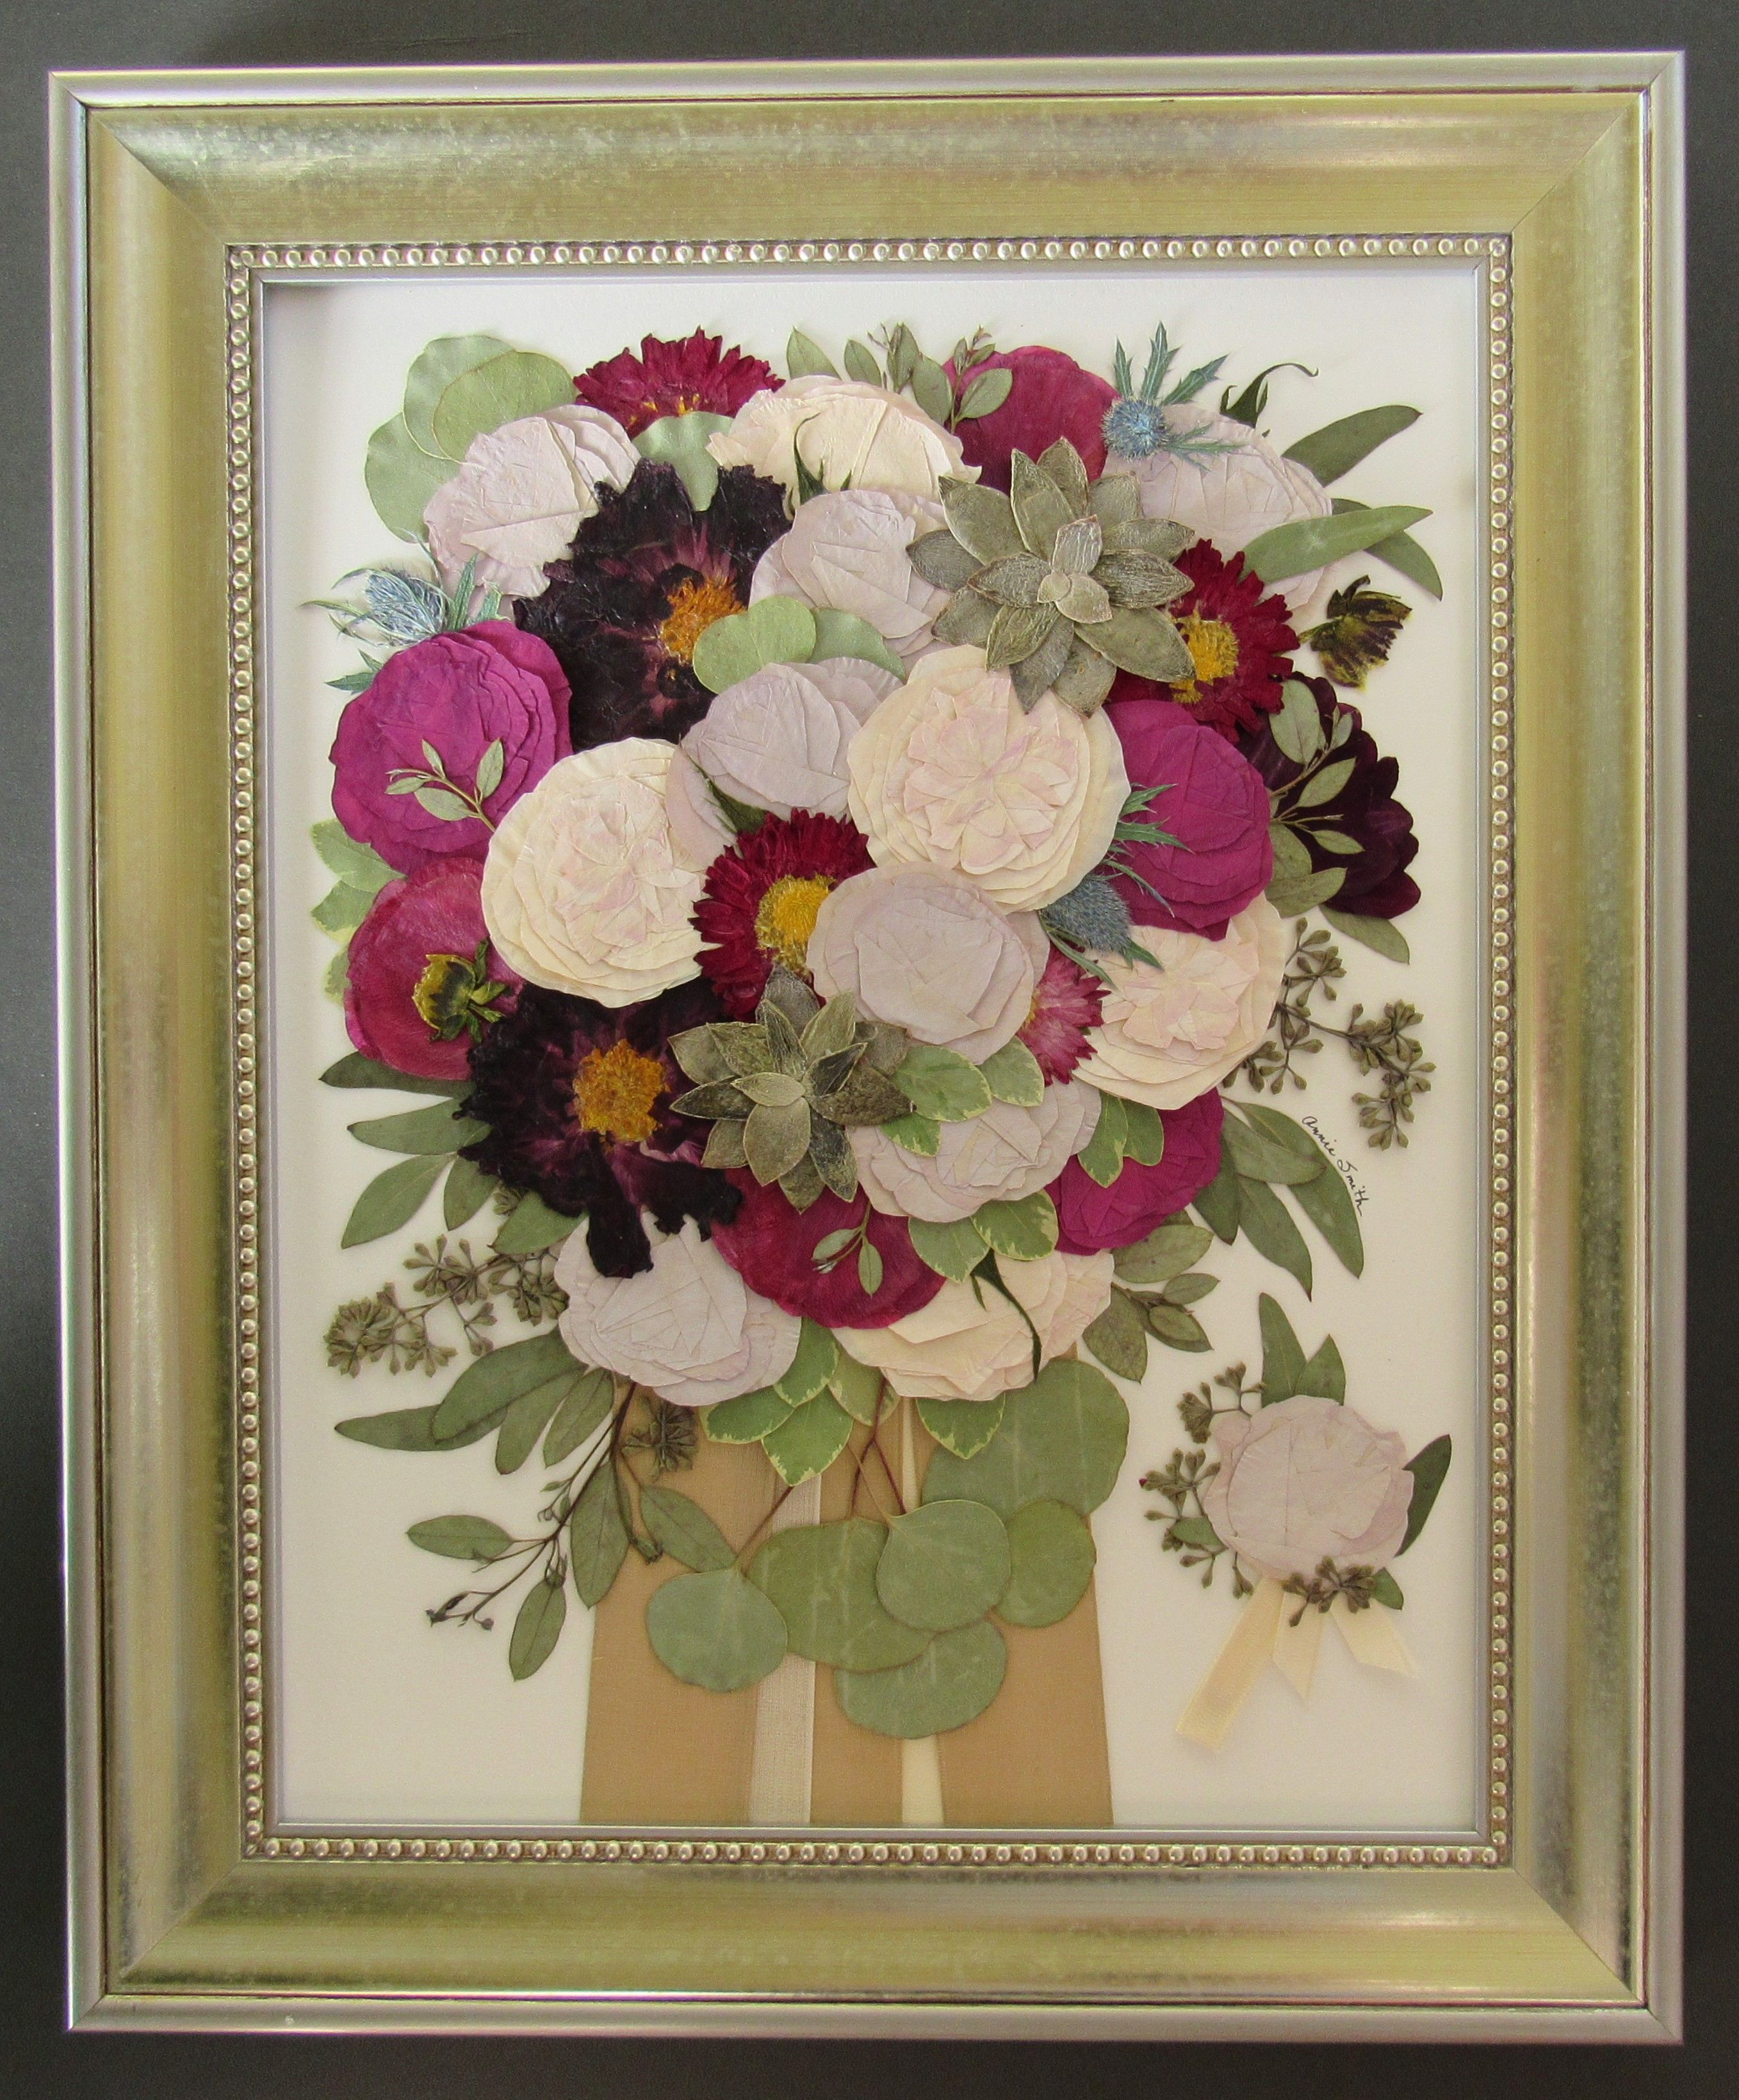 Pressed Wedding Flowers: Bridal Bouquet. Pressed Flower Art. Flowers Are Pressed